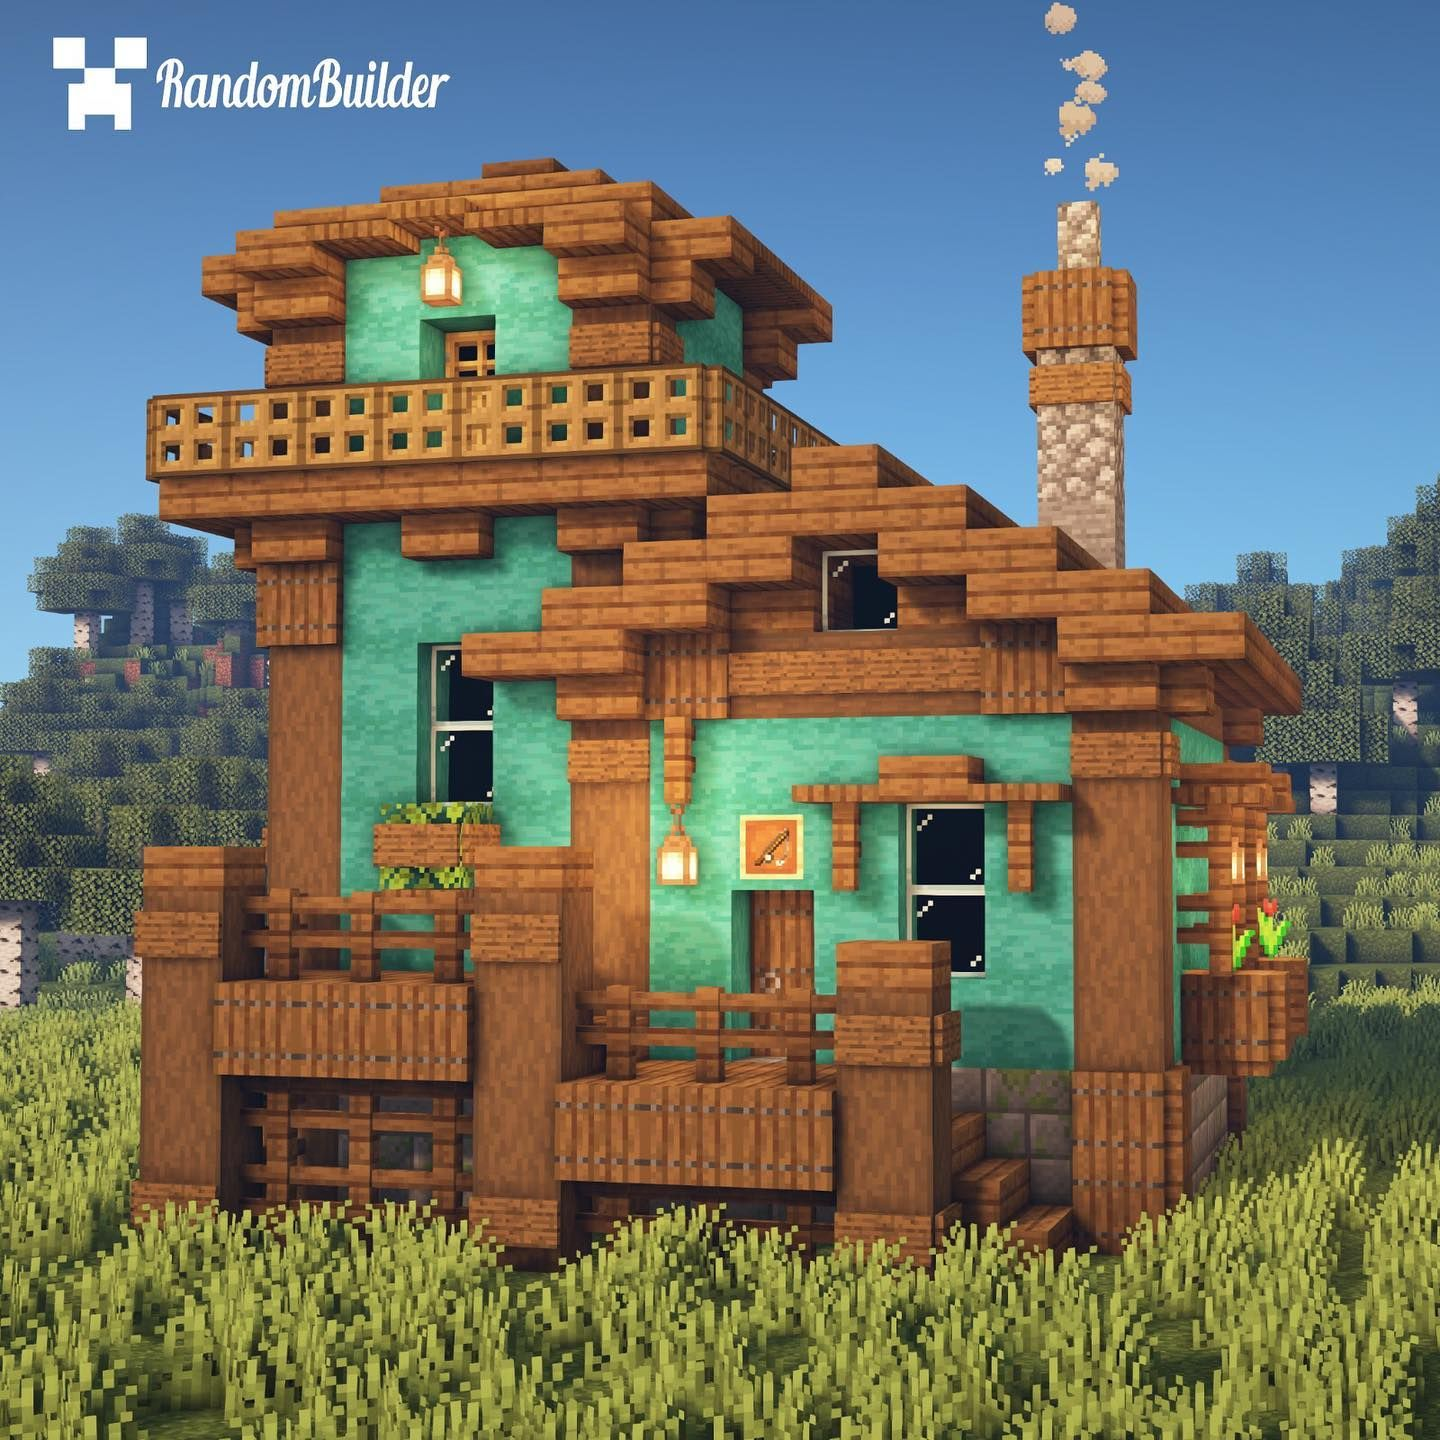 Fisherman U2019s Store Using 1 16 Blocks  Ud83d Udc1f Follow  Randombuildermc For More  Minecraft Content